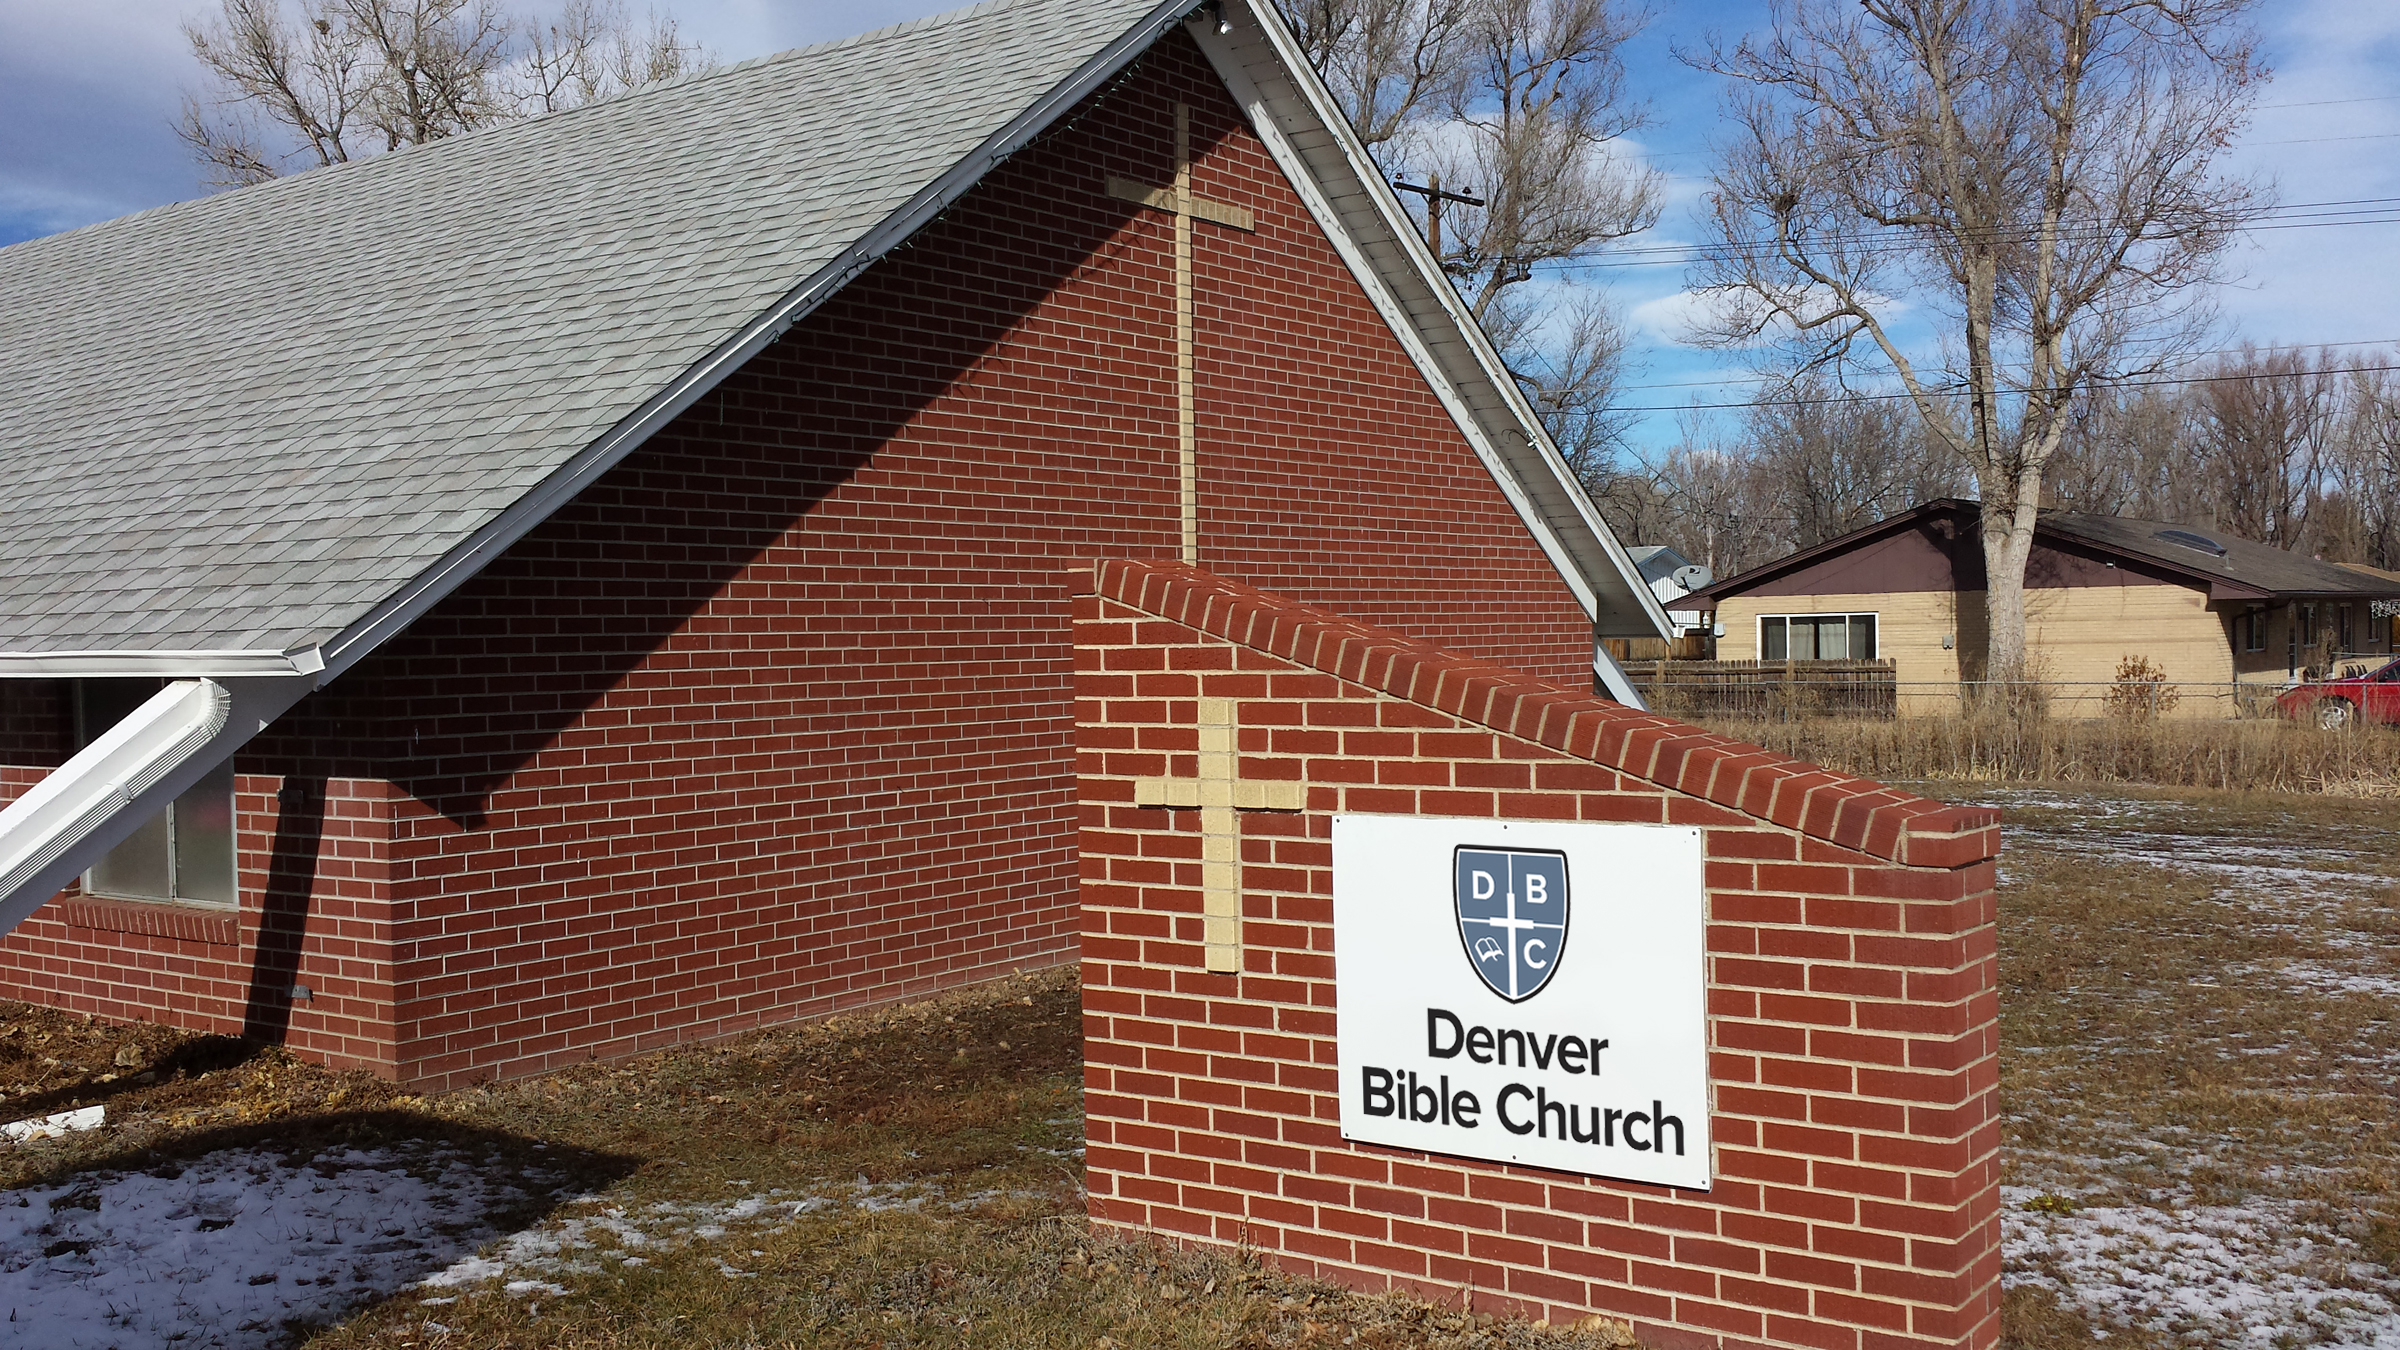 Denver Bible Church